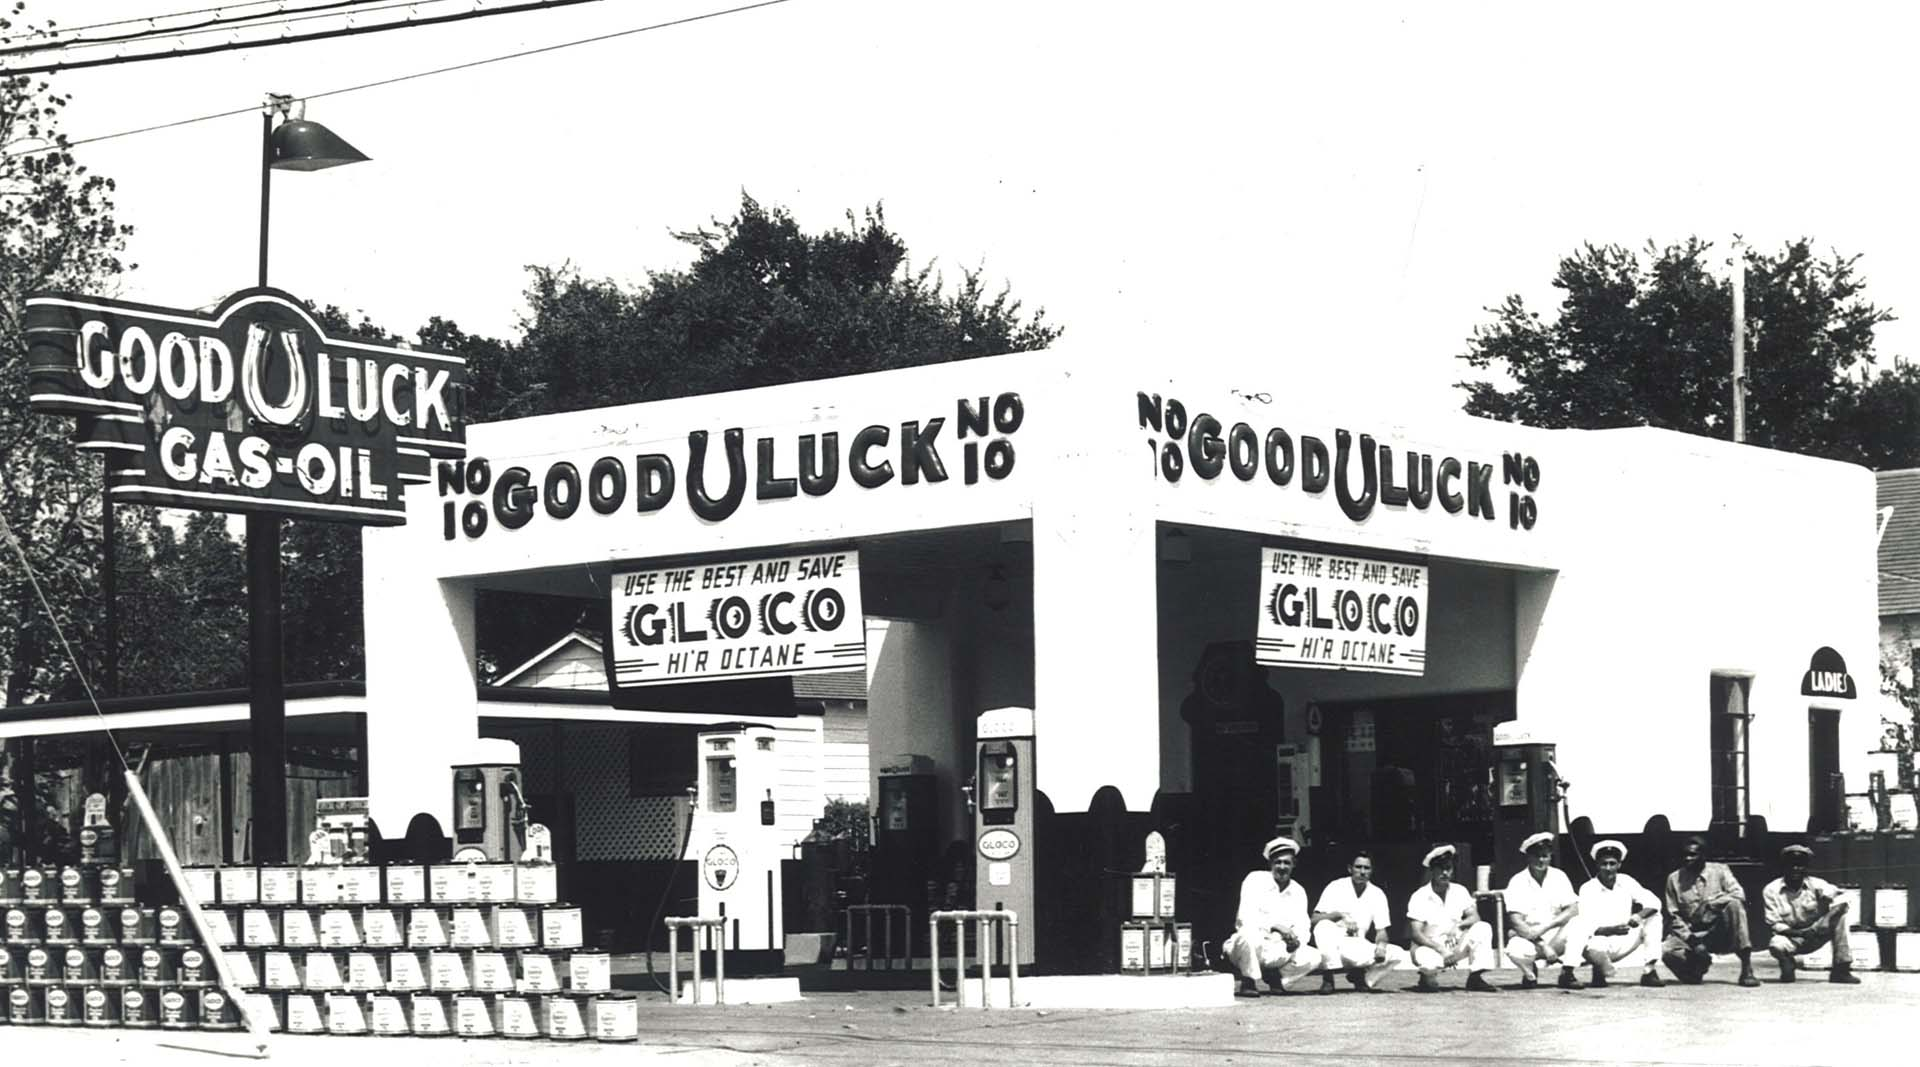 Home_2_Good_Luck_Oil_Company_Service_GLOCO_Petroleum_Petroliana_Ethyl_Gasoline_Fuel_Signs_Collectables_Store_Museum_History_Dallas_Fort_Worth_Texas_Gas_Drepression_Era_Art_Deco_Architecture.jpg